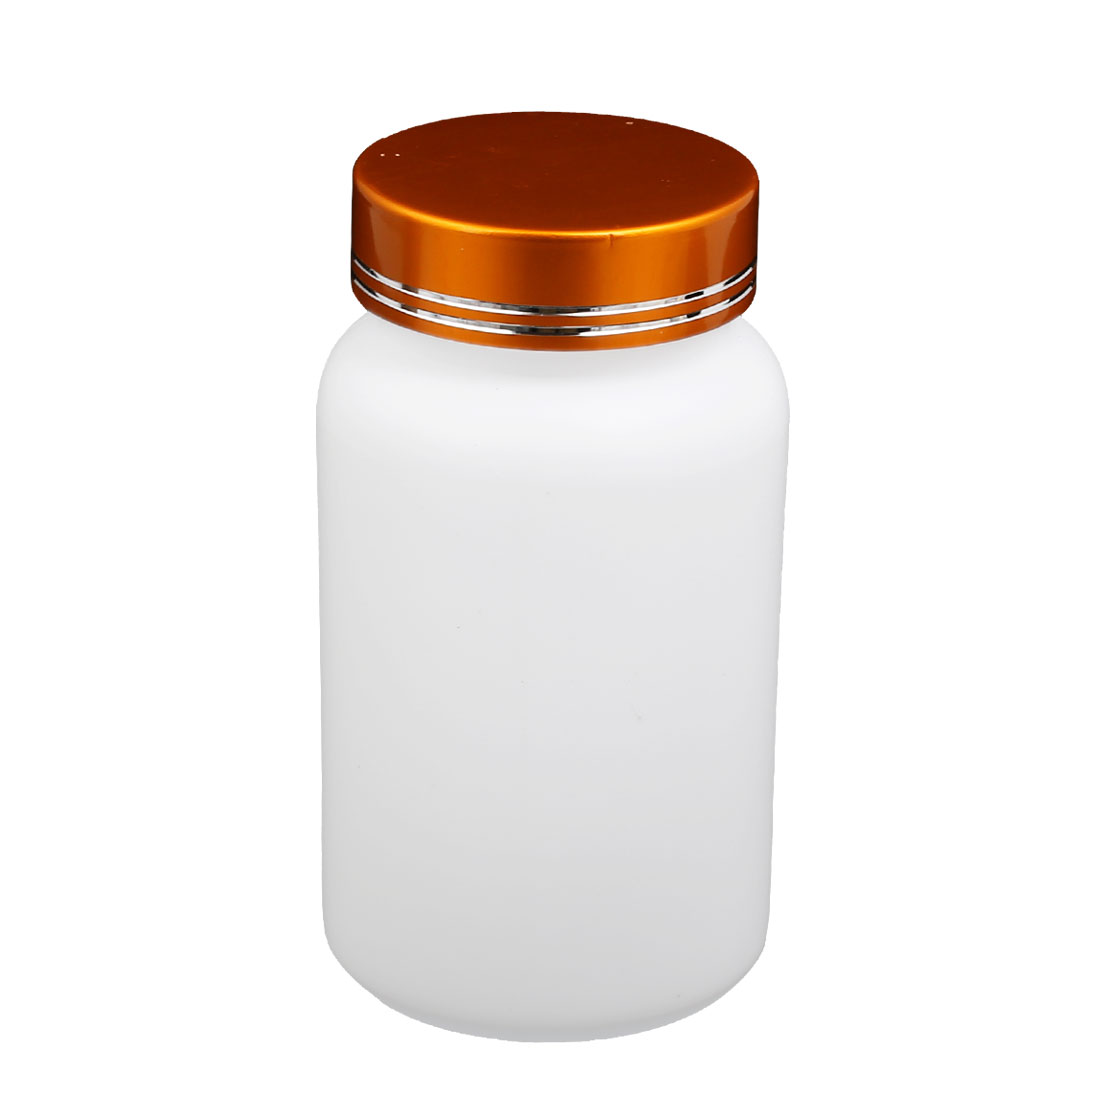 200mL Capacity Empty Plastic Container PET Bottle w Gold Tone Metal Cap